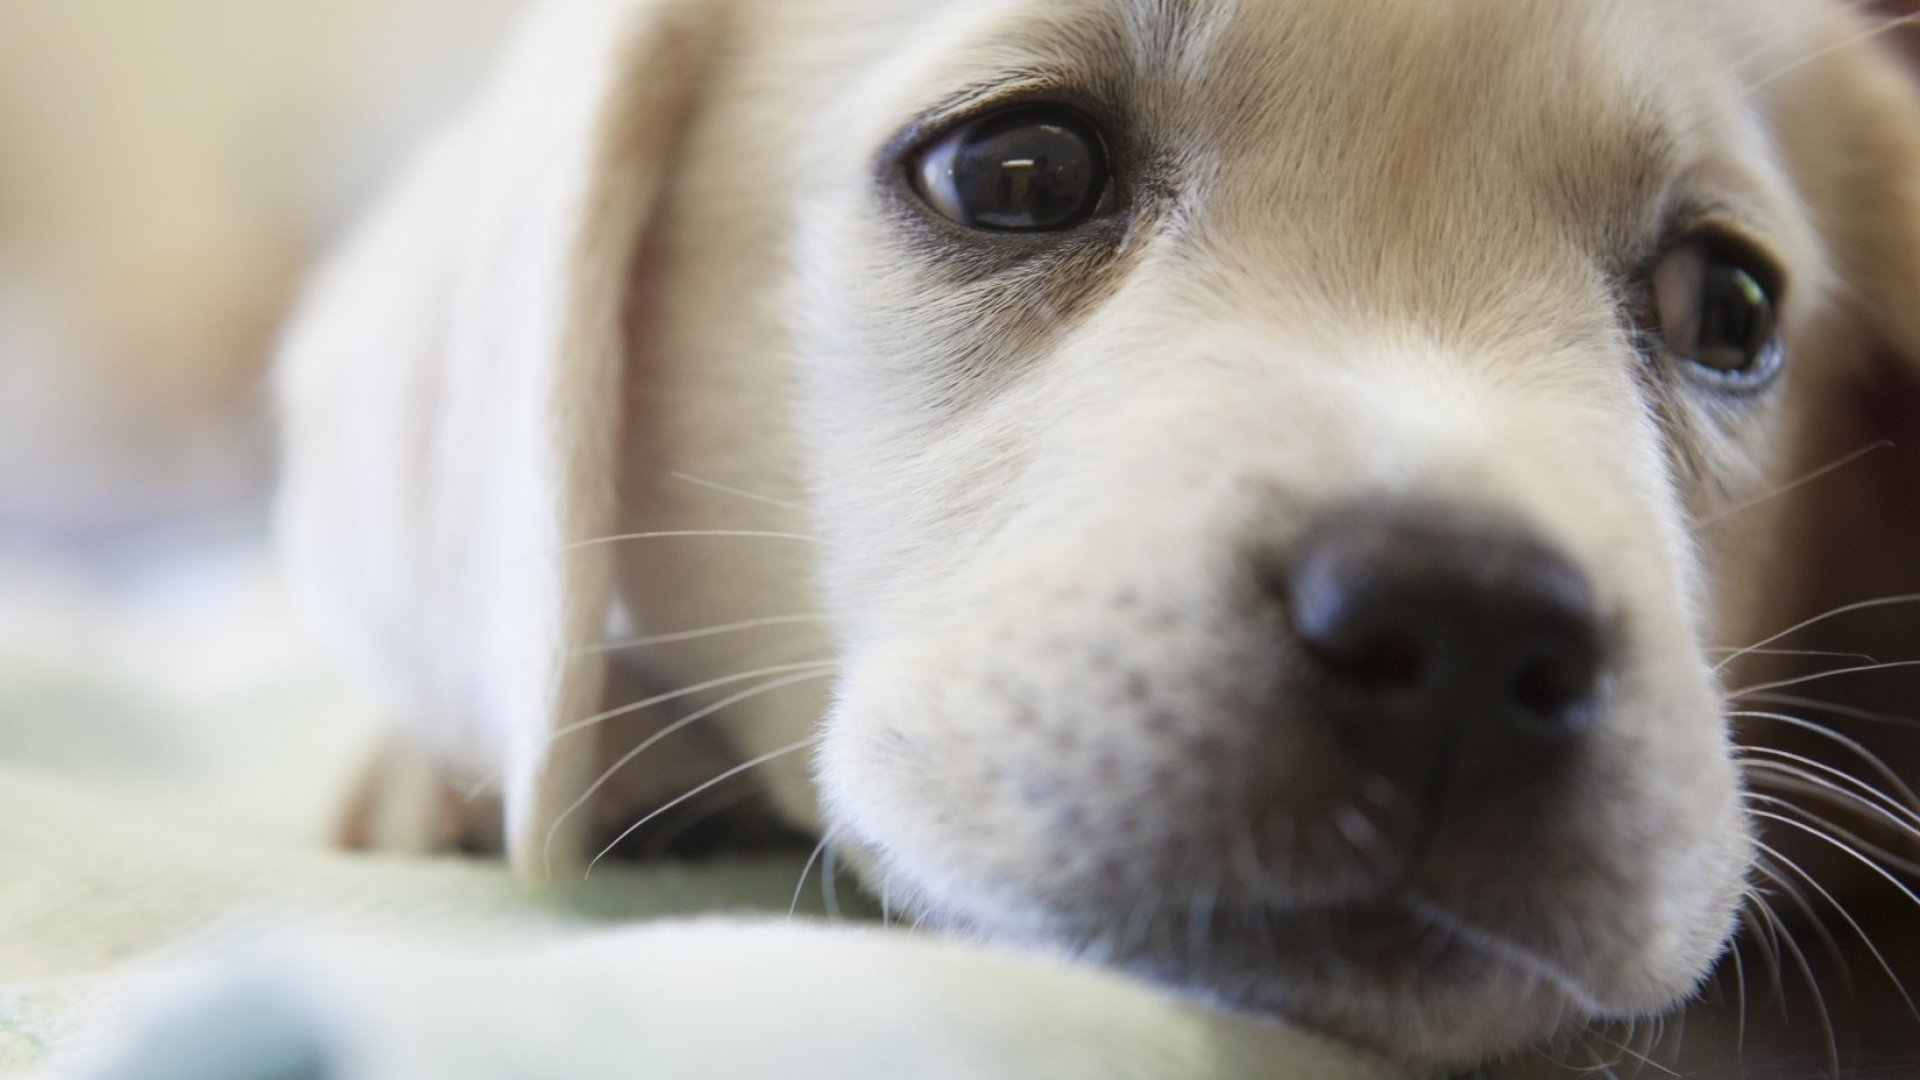 American Airlines Wins 'Cutest Excuse for Memorial Day Travel Disruption': Emergency Puppy Delivery